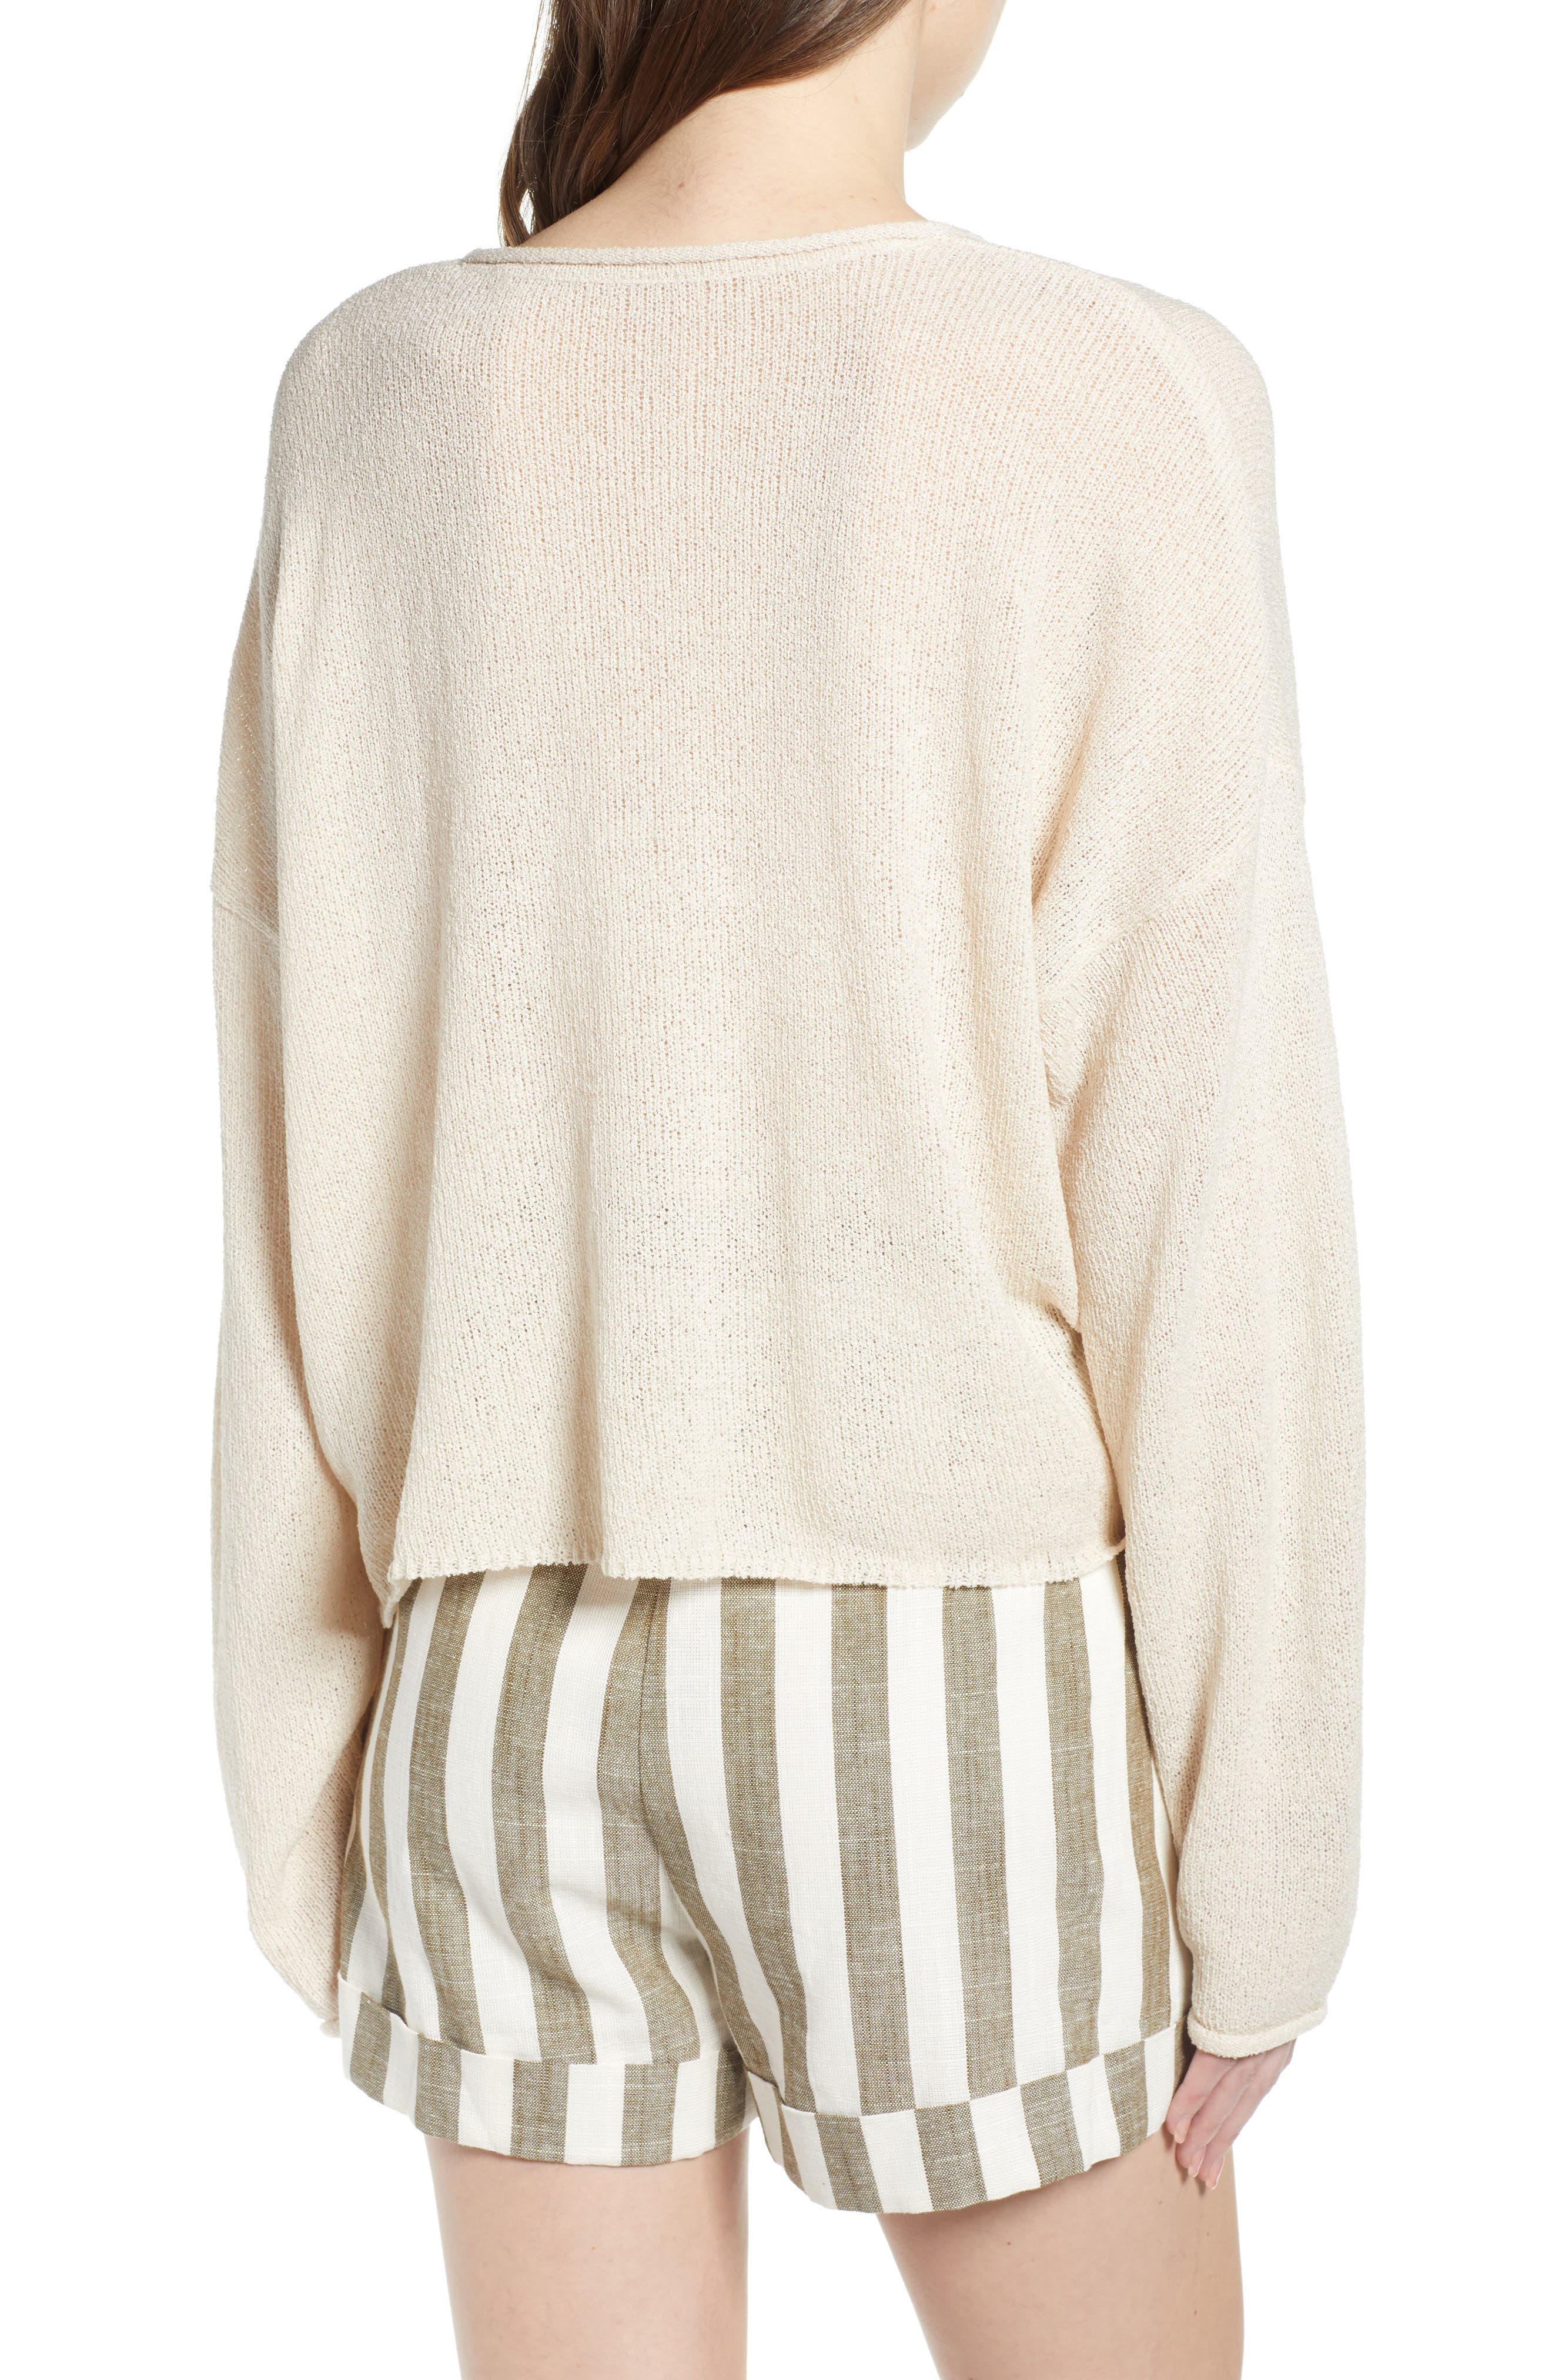 CHRISELLE LIM COLLECTION, Chriselle Lim Sabine Front/Back Sweater, Alternate thumbnail 3, color, NATURAL